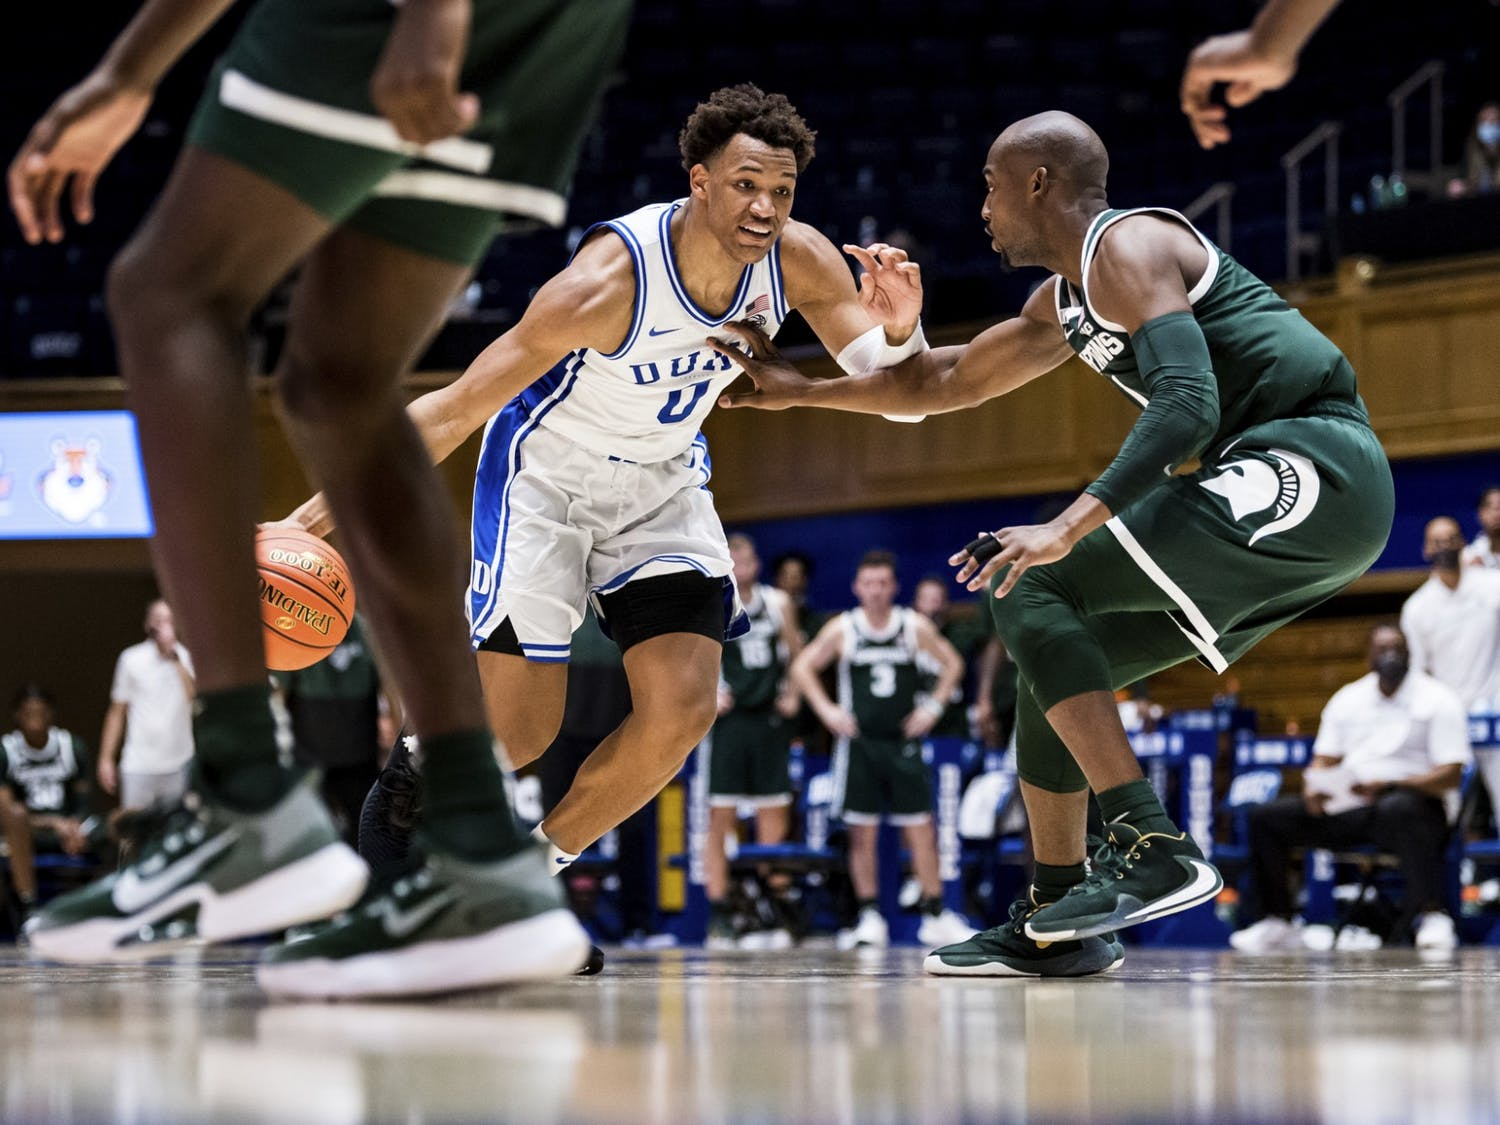 The Blue Devils will need Wendell Moore Jr. to both get to the foul line and provide steady leadership as the Yellow Jackets come to town.